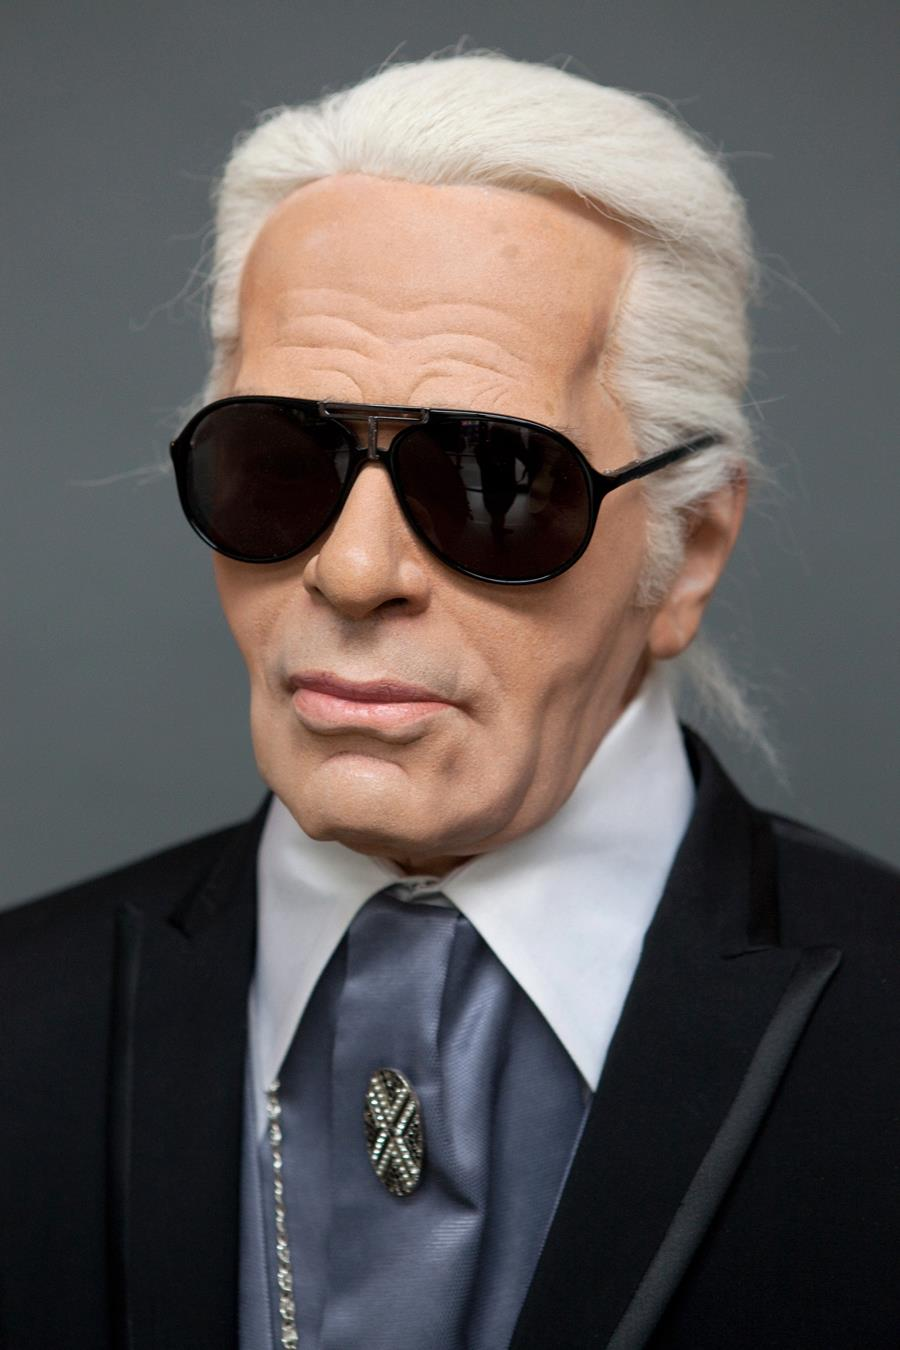 Karl Lagerfeld bites off more than he can chew?